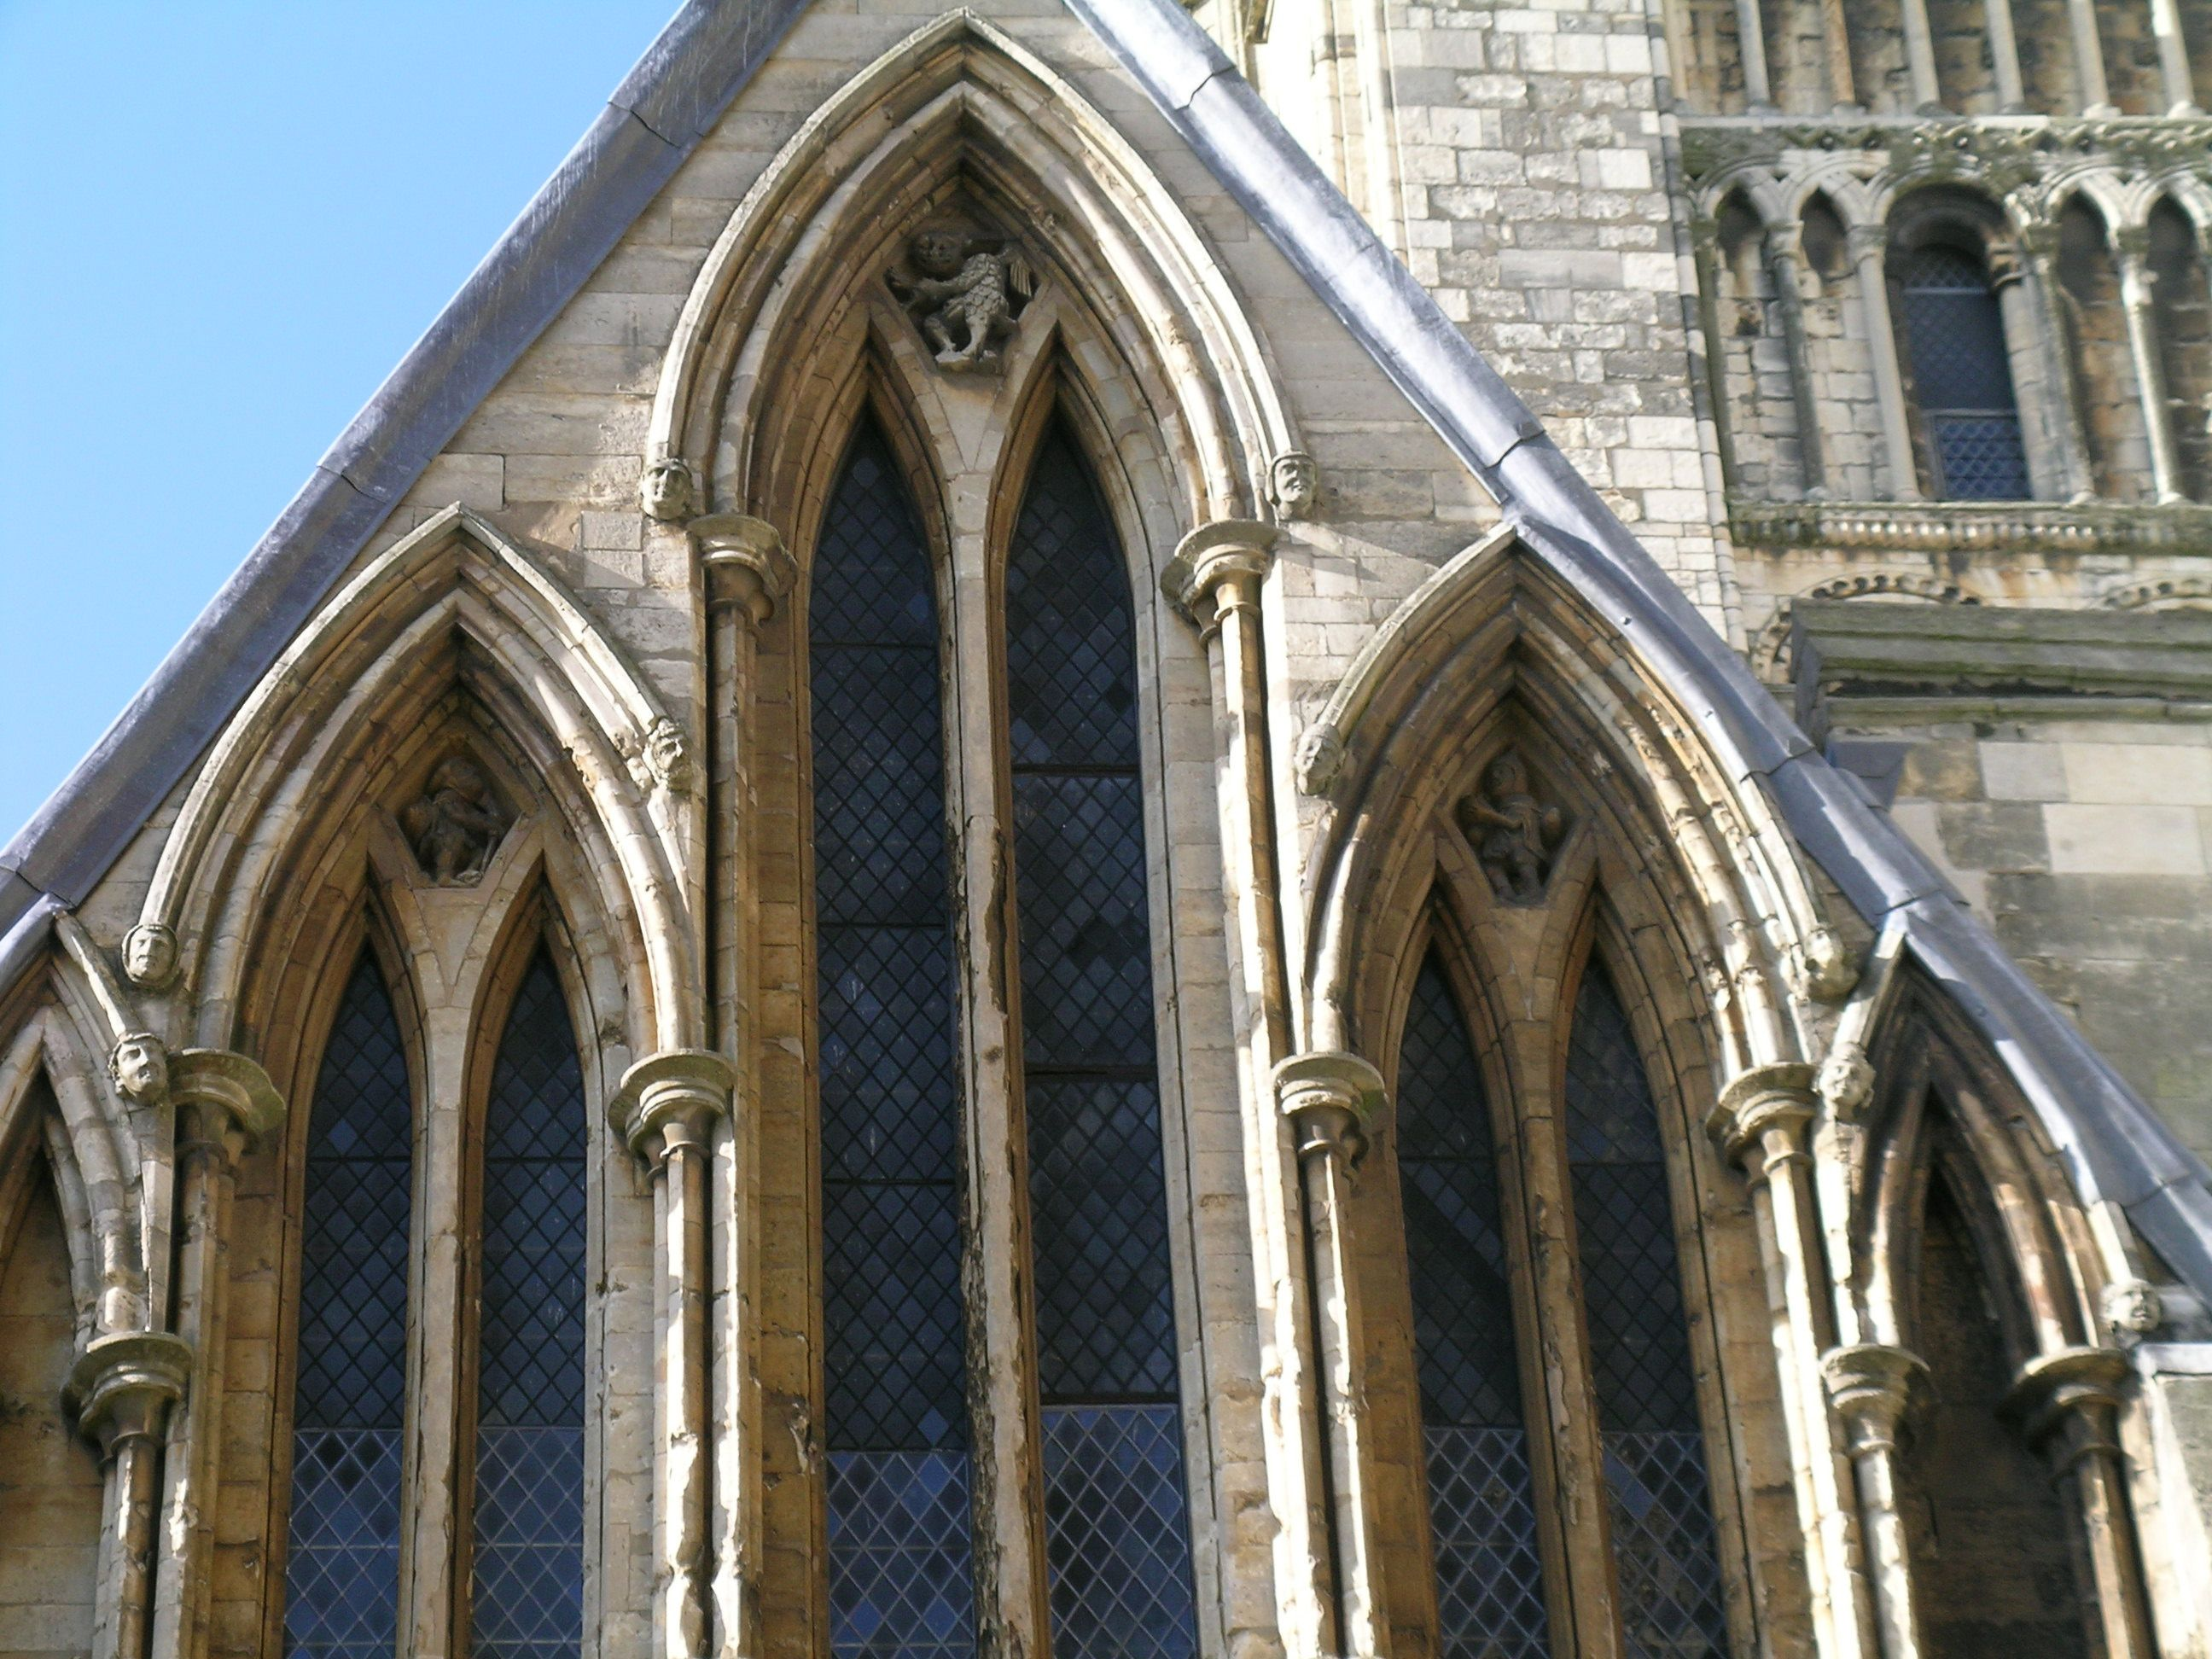 Gothic Architecture Pointed Arch With Arches Gothic